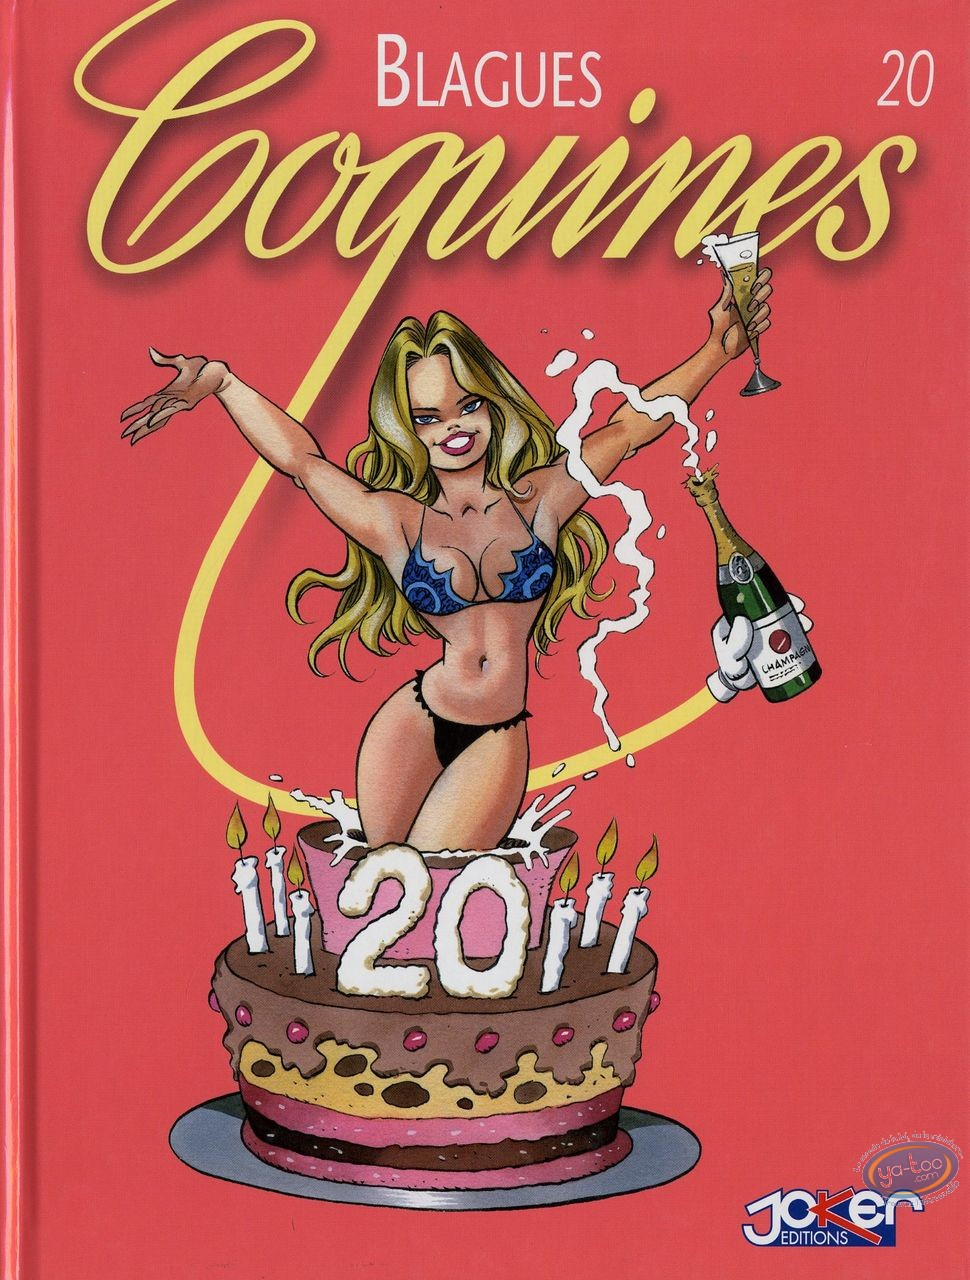 BD adultes, Blagues Coquines : Blagues Coquines, Tome 20